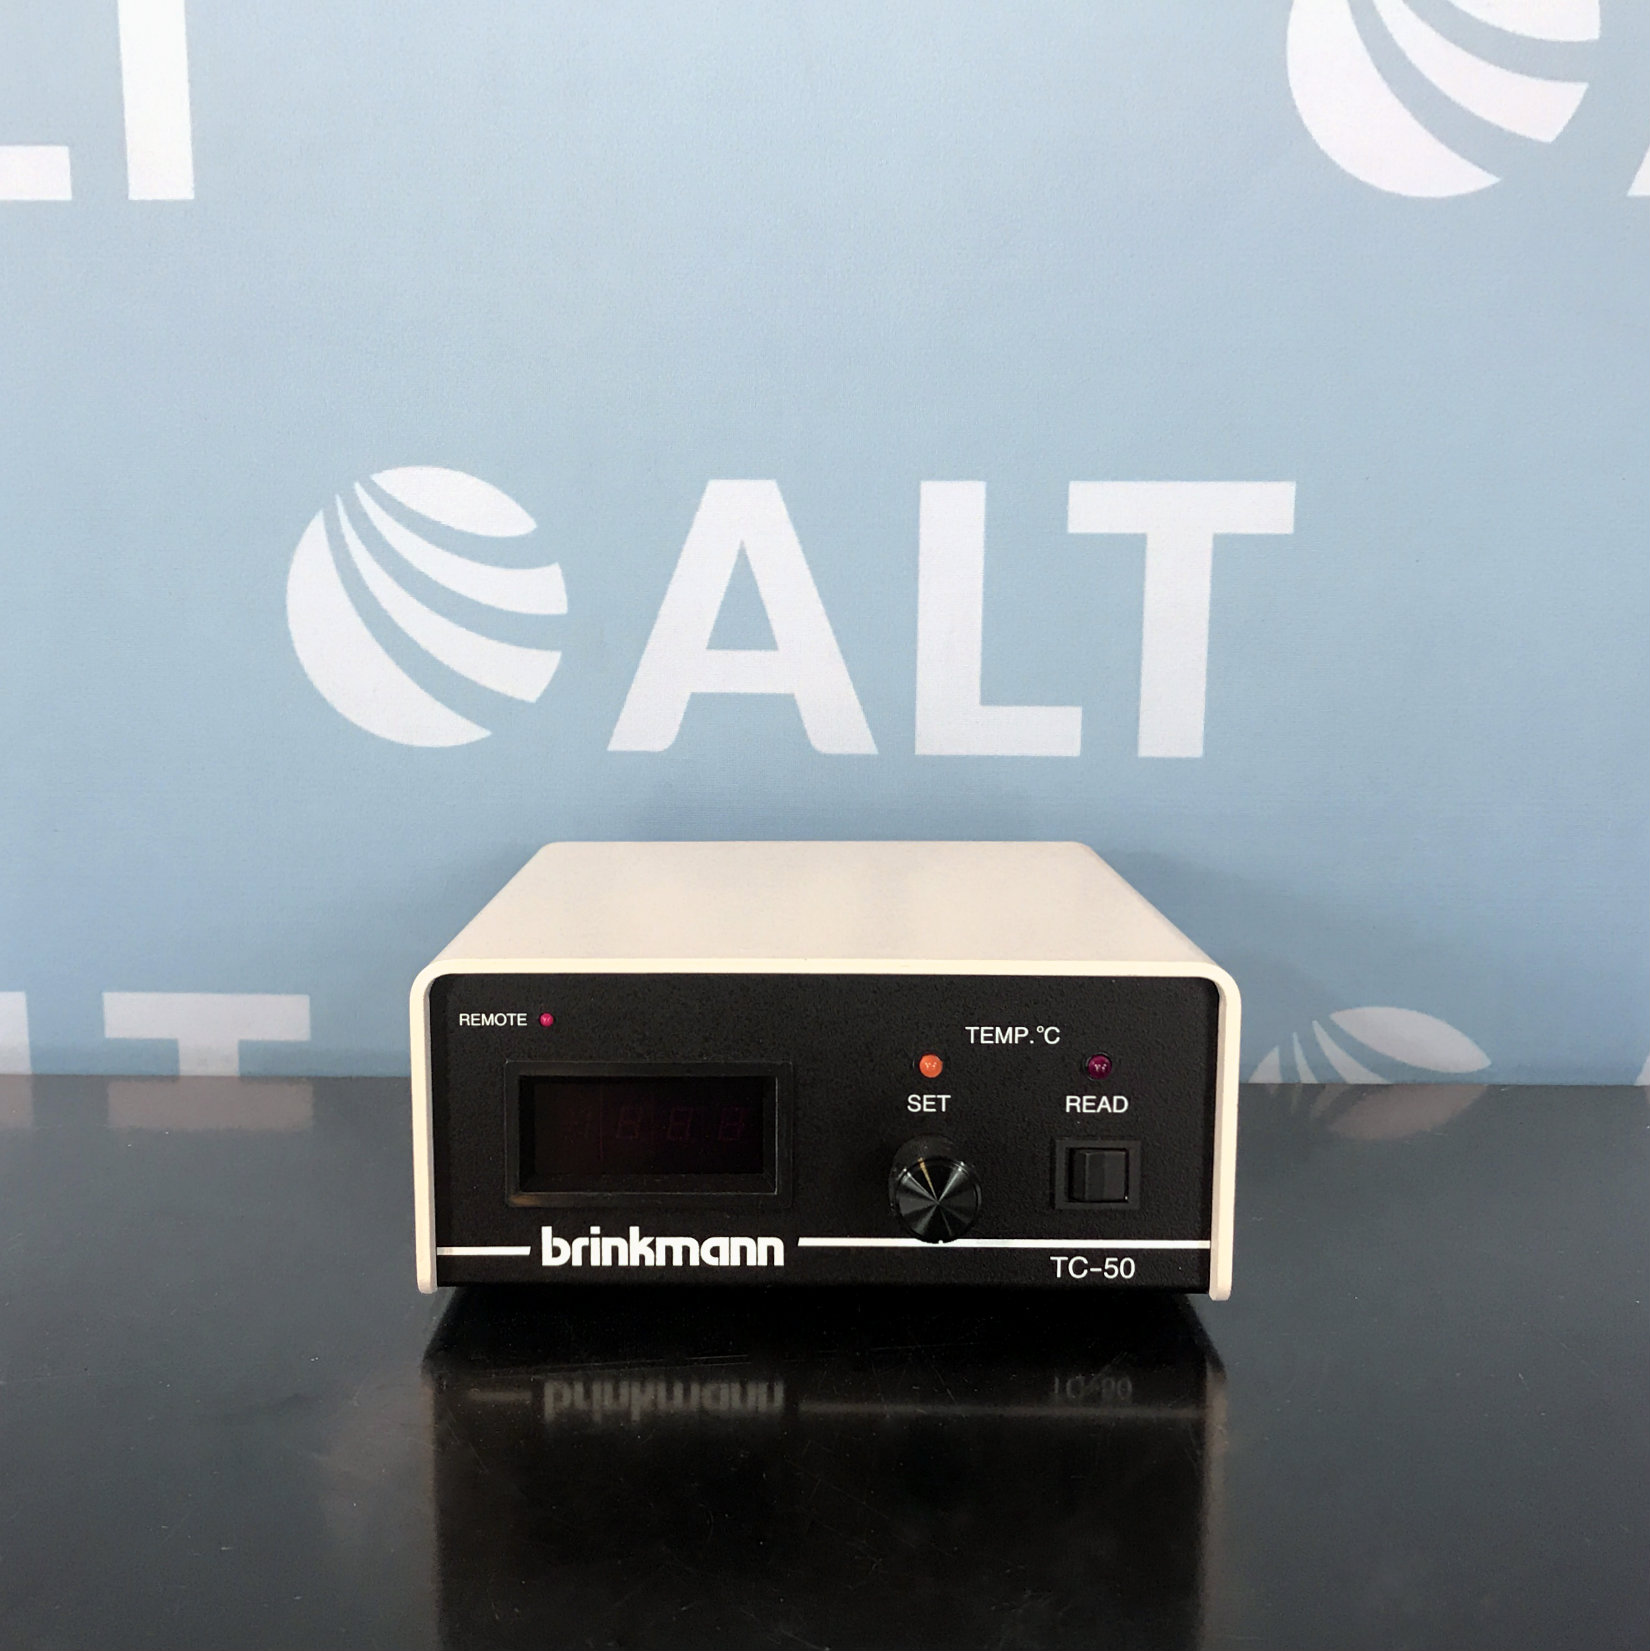 Brinkmann TC-50 Temperature Controller with Coulmn Heater Image